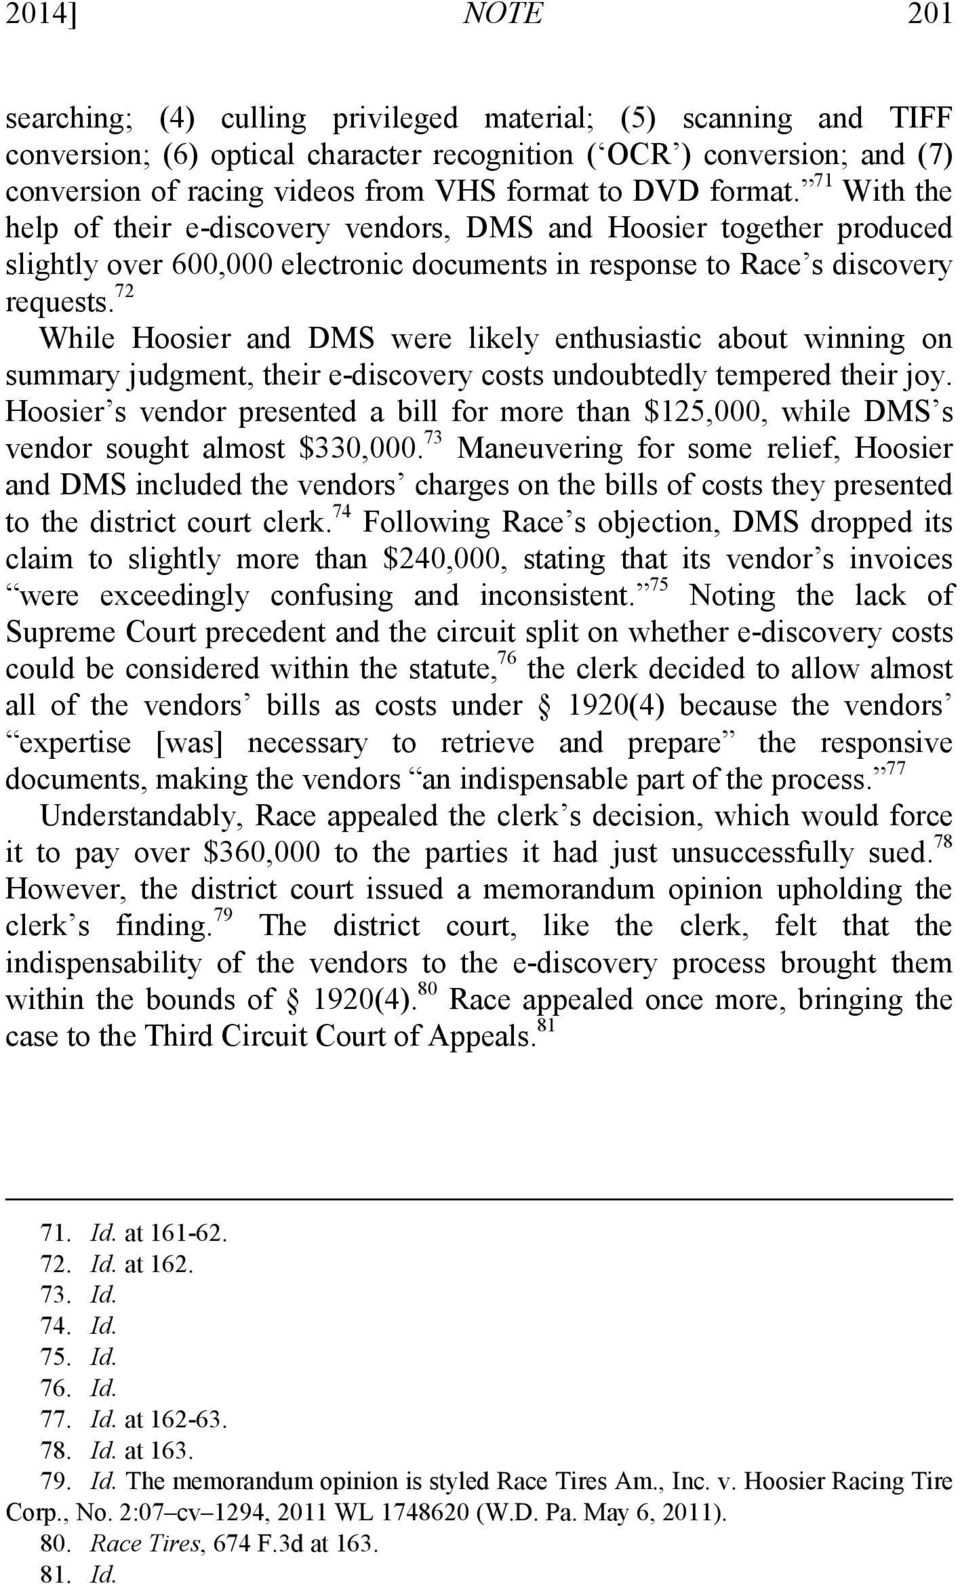 72 While Hoosier and DMS were likely enthusiastic about winning on summary judgment, their e-discovery costs undoubtedly tempered their joy.